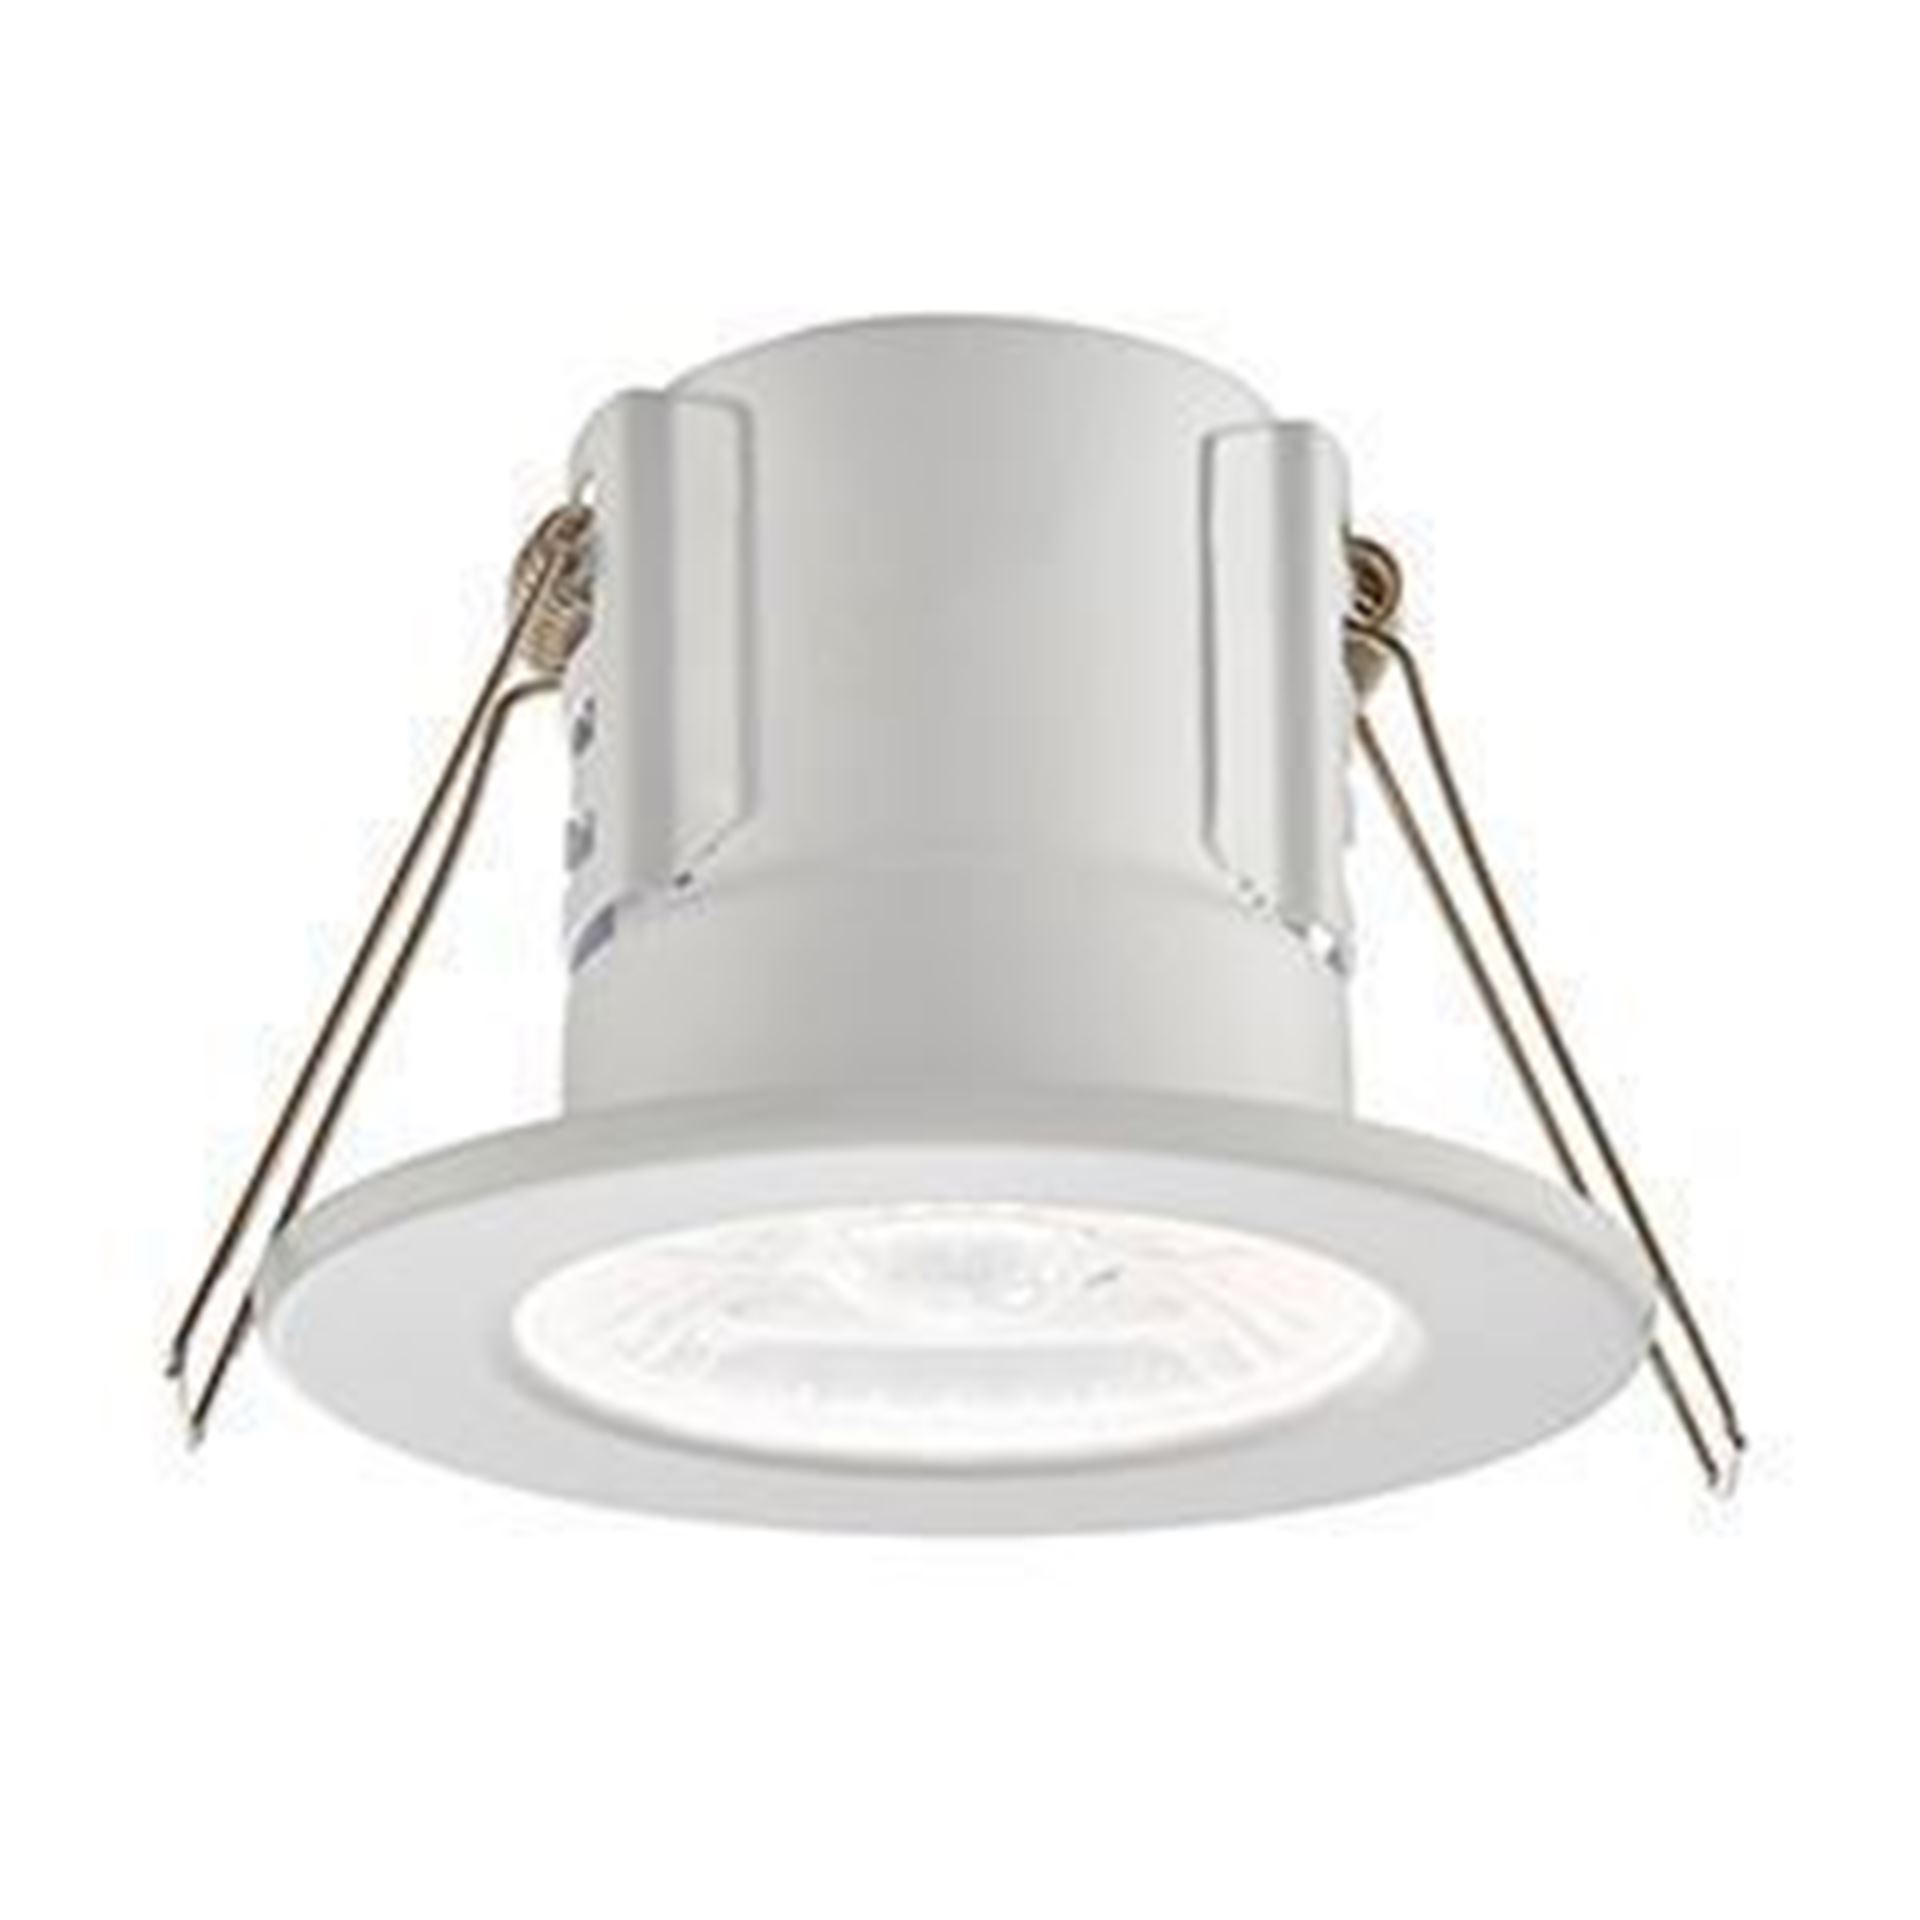 ShieldECO Saxby 4W LED Fire rated downlight Matt White, Cool White 73786